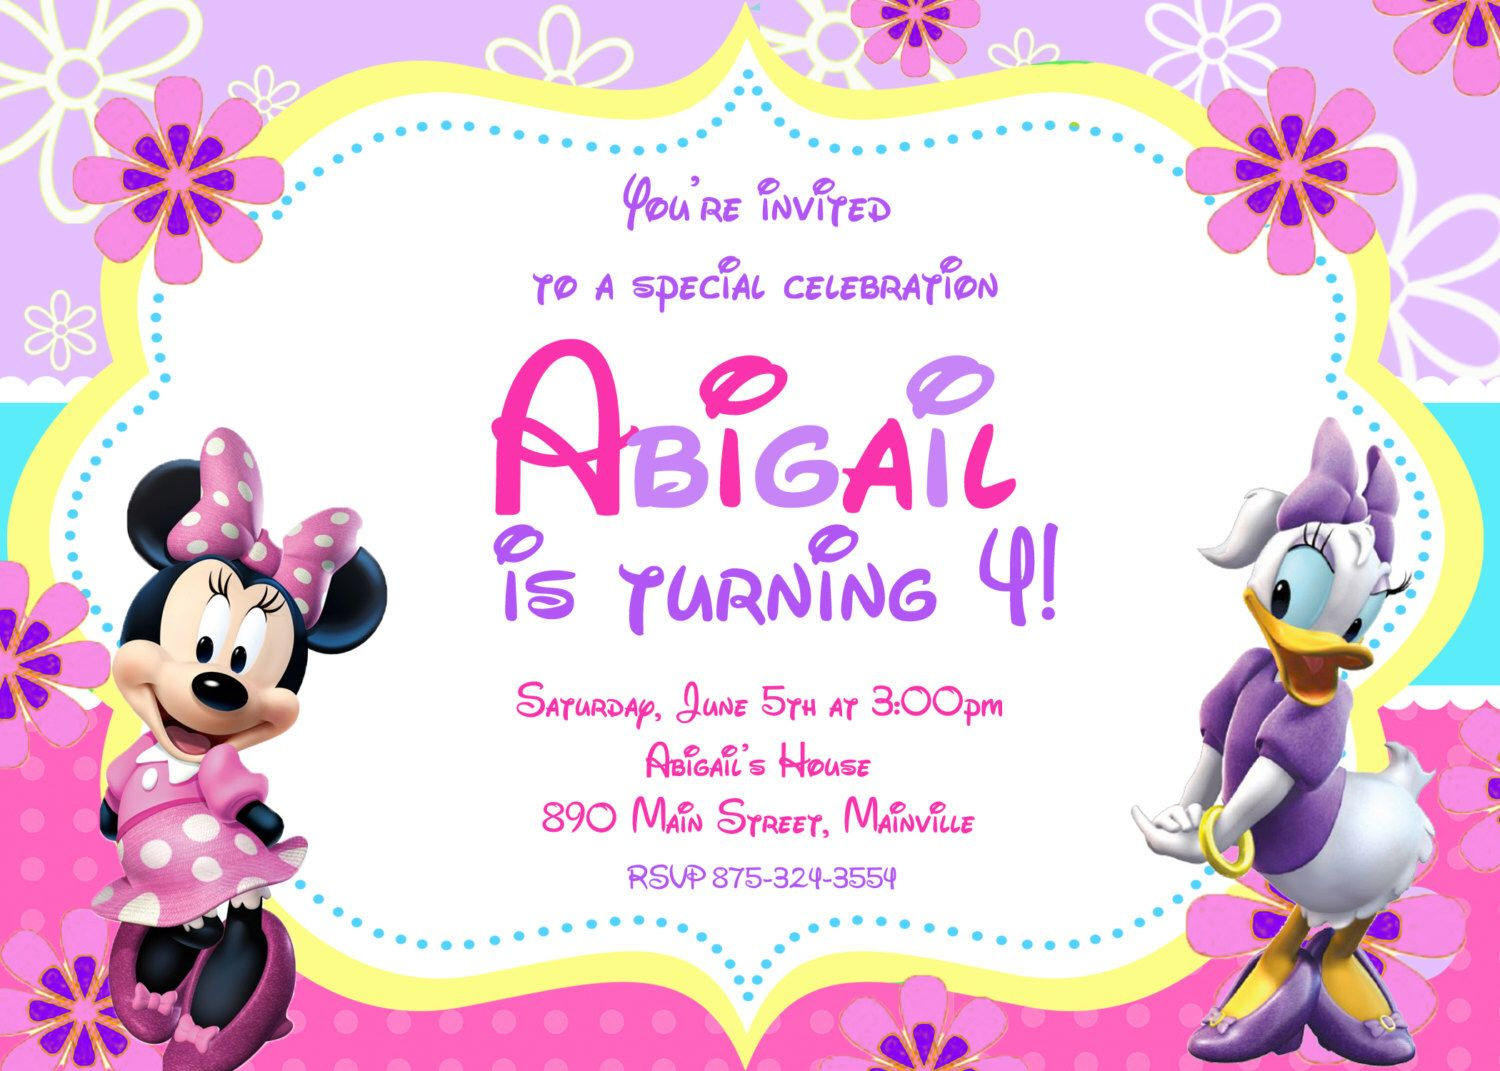 Minnie mouse daisy duck birthday party invitation digital or minnie mouse daisy duck birthday party invitation digital or printed monicamarmolfo Image collections